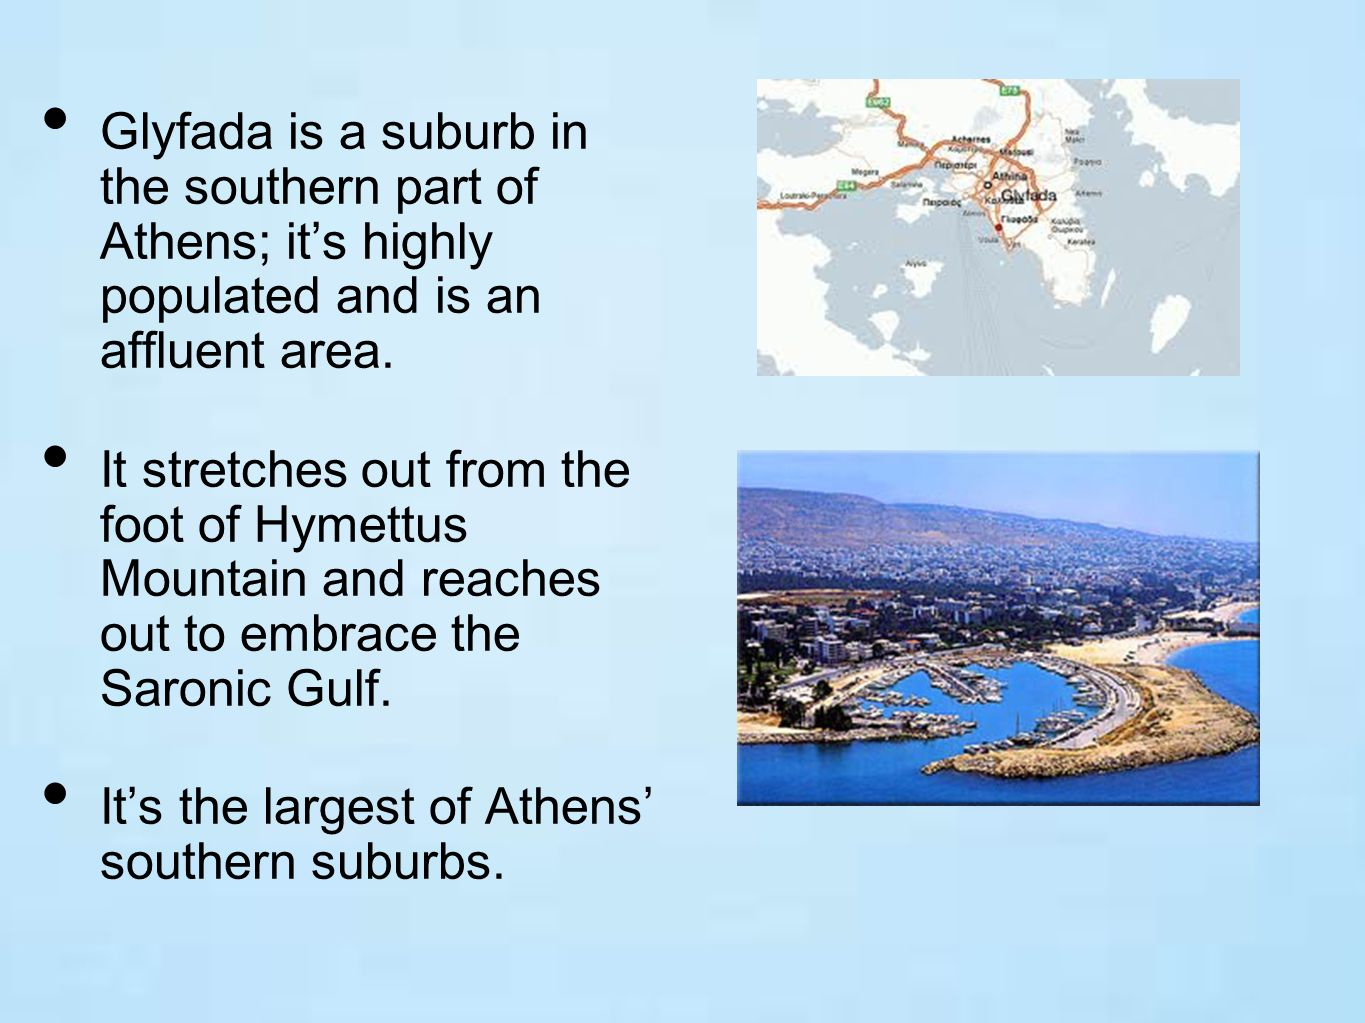 Glyfada is a suburb in the southern part of Athens; it's highly populated and is an affluent area.